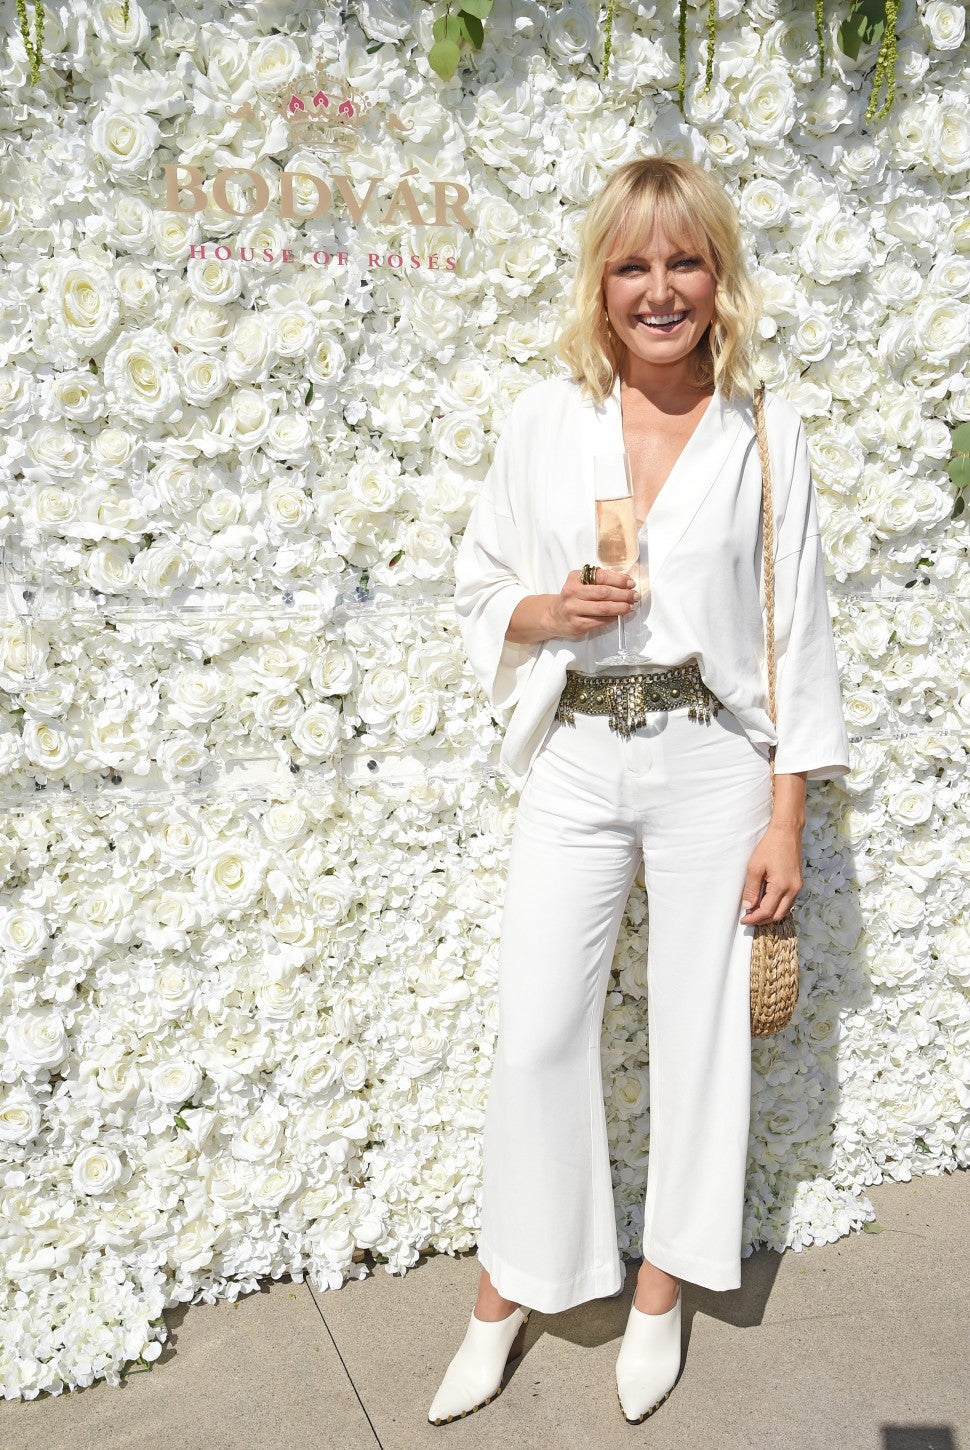 Malin Akerman on national rose day